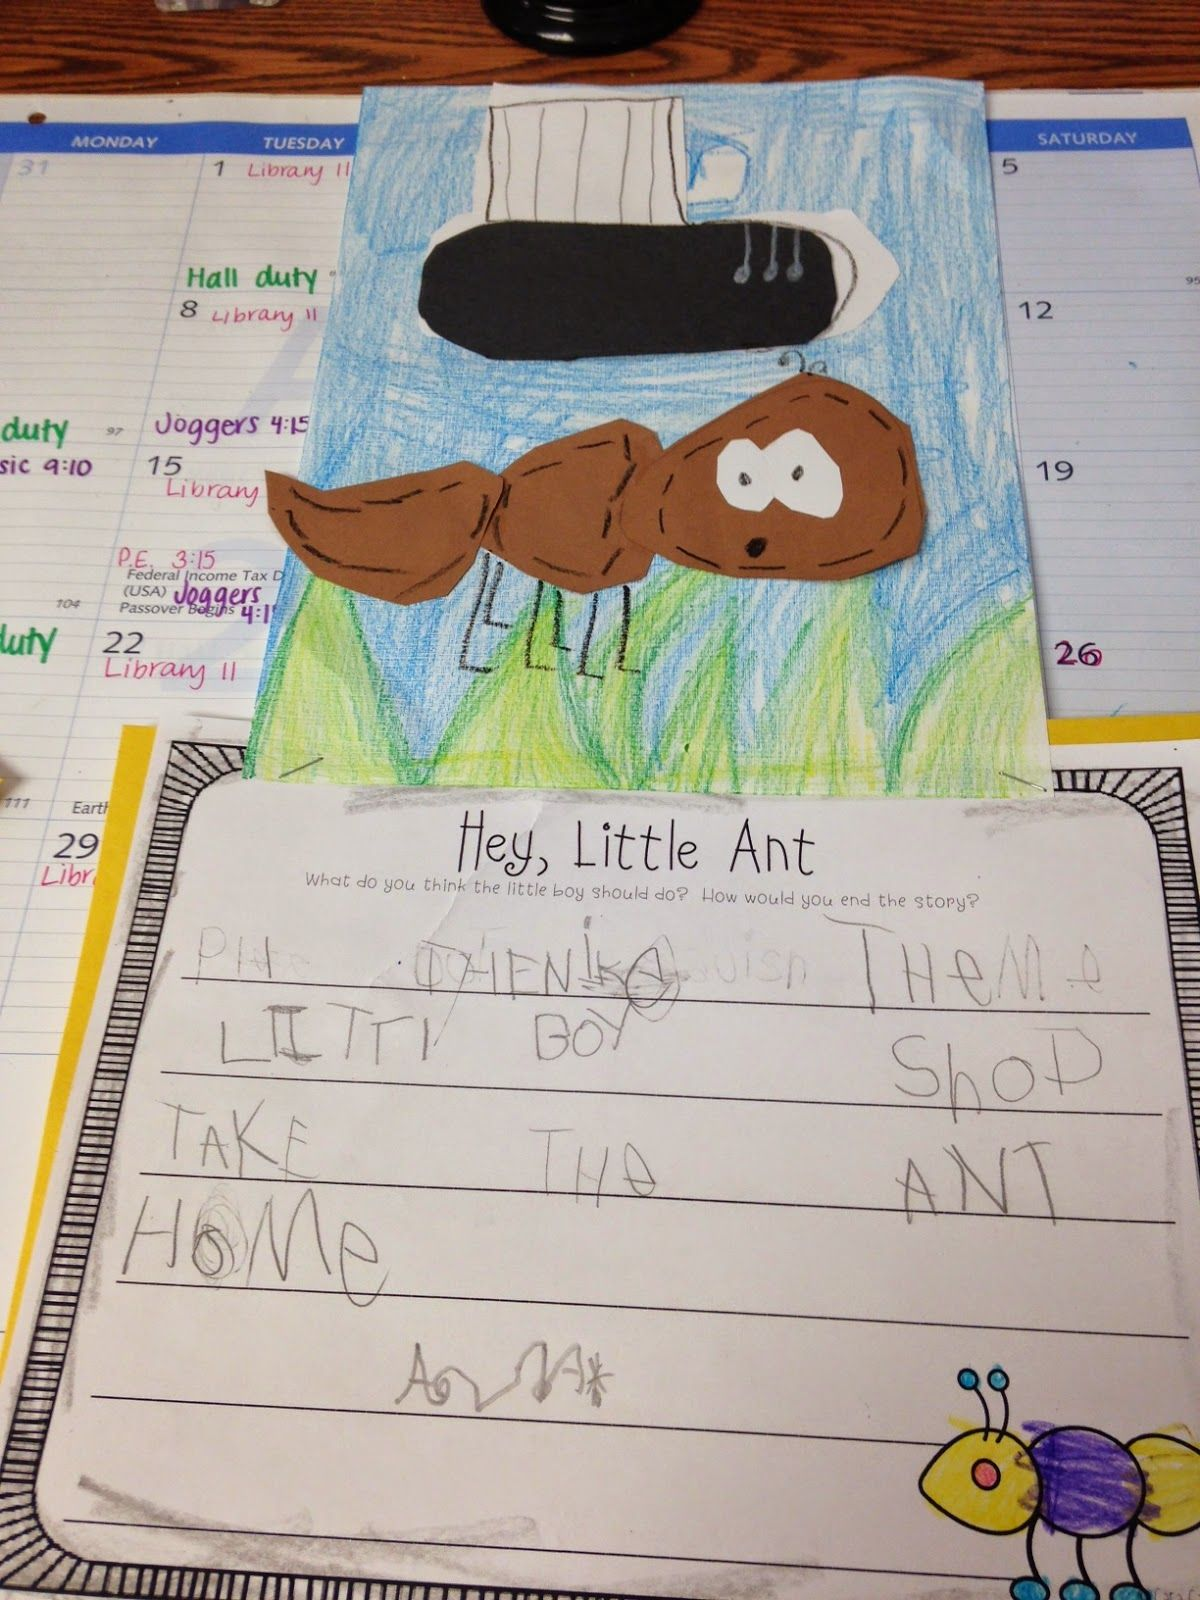 Opinion writing hey little ant